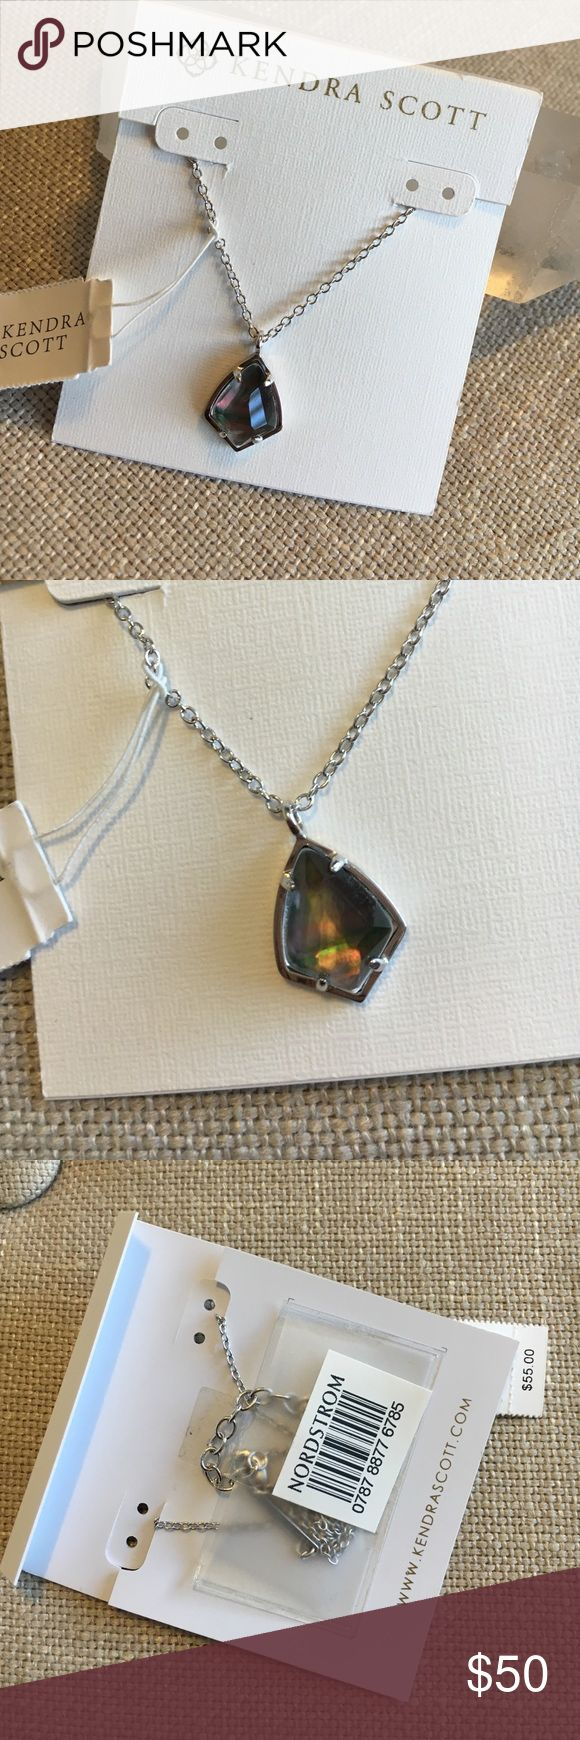 Kendra Scott Cory Black Mother of Pearl Necklace This Kendra Scott Cory Necklace Black in Mother of Pearl is new, never been worn with tags (no bag or box but will ship in a box!) I received this as a gift and have never worn so am deciding to let her go to a home that will show her the love she deserves!! Very pretty stone!! A great everyday necklace! Kendra Scott Jewelry Necklaces